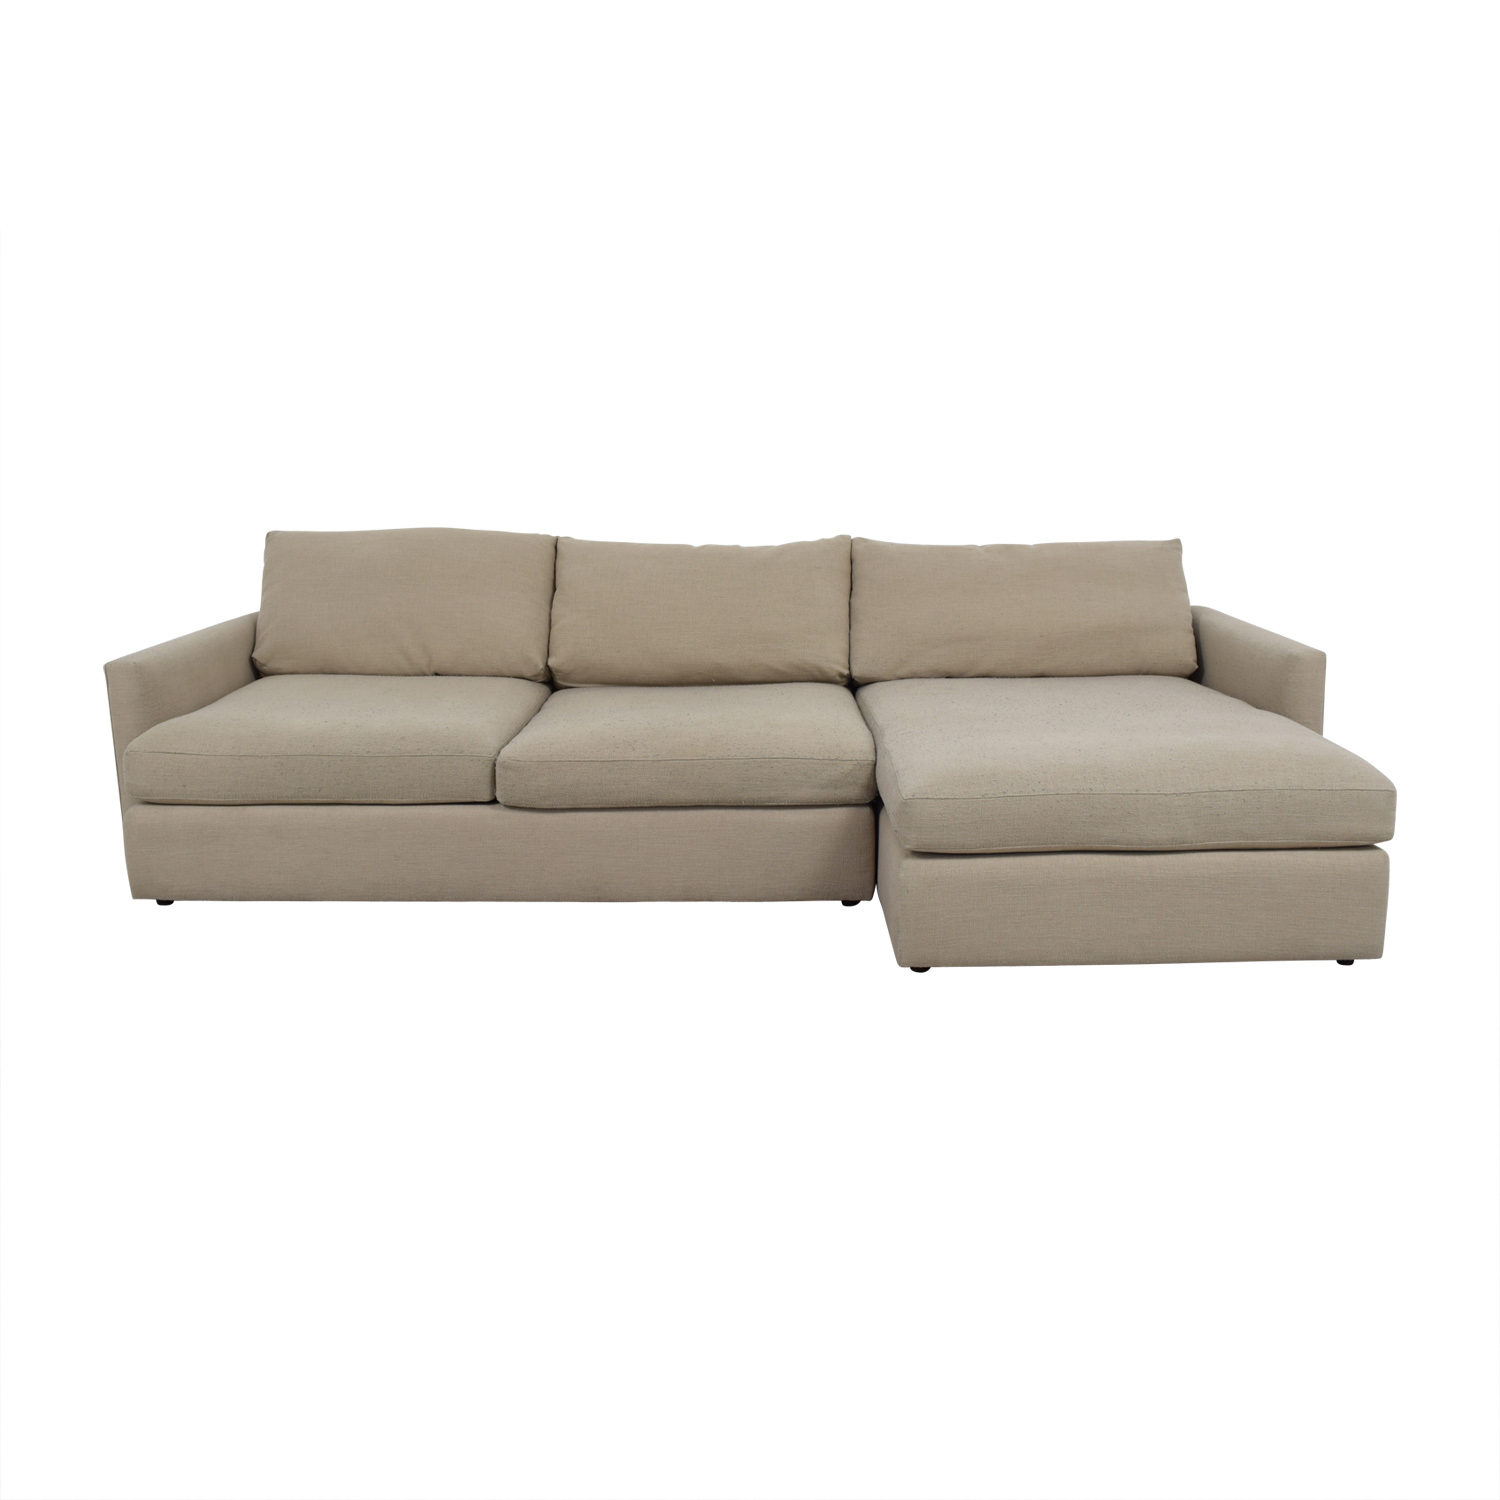 Crate & Barrel Crate & Barrel Lounge II Beige Sectional second hand